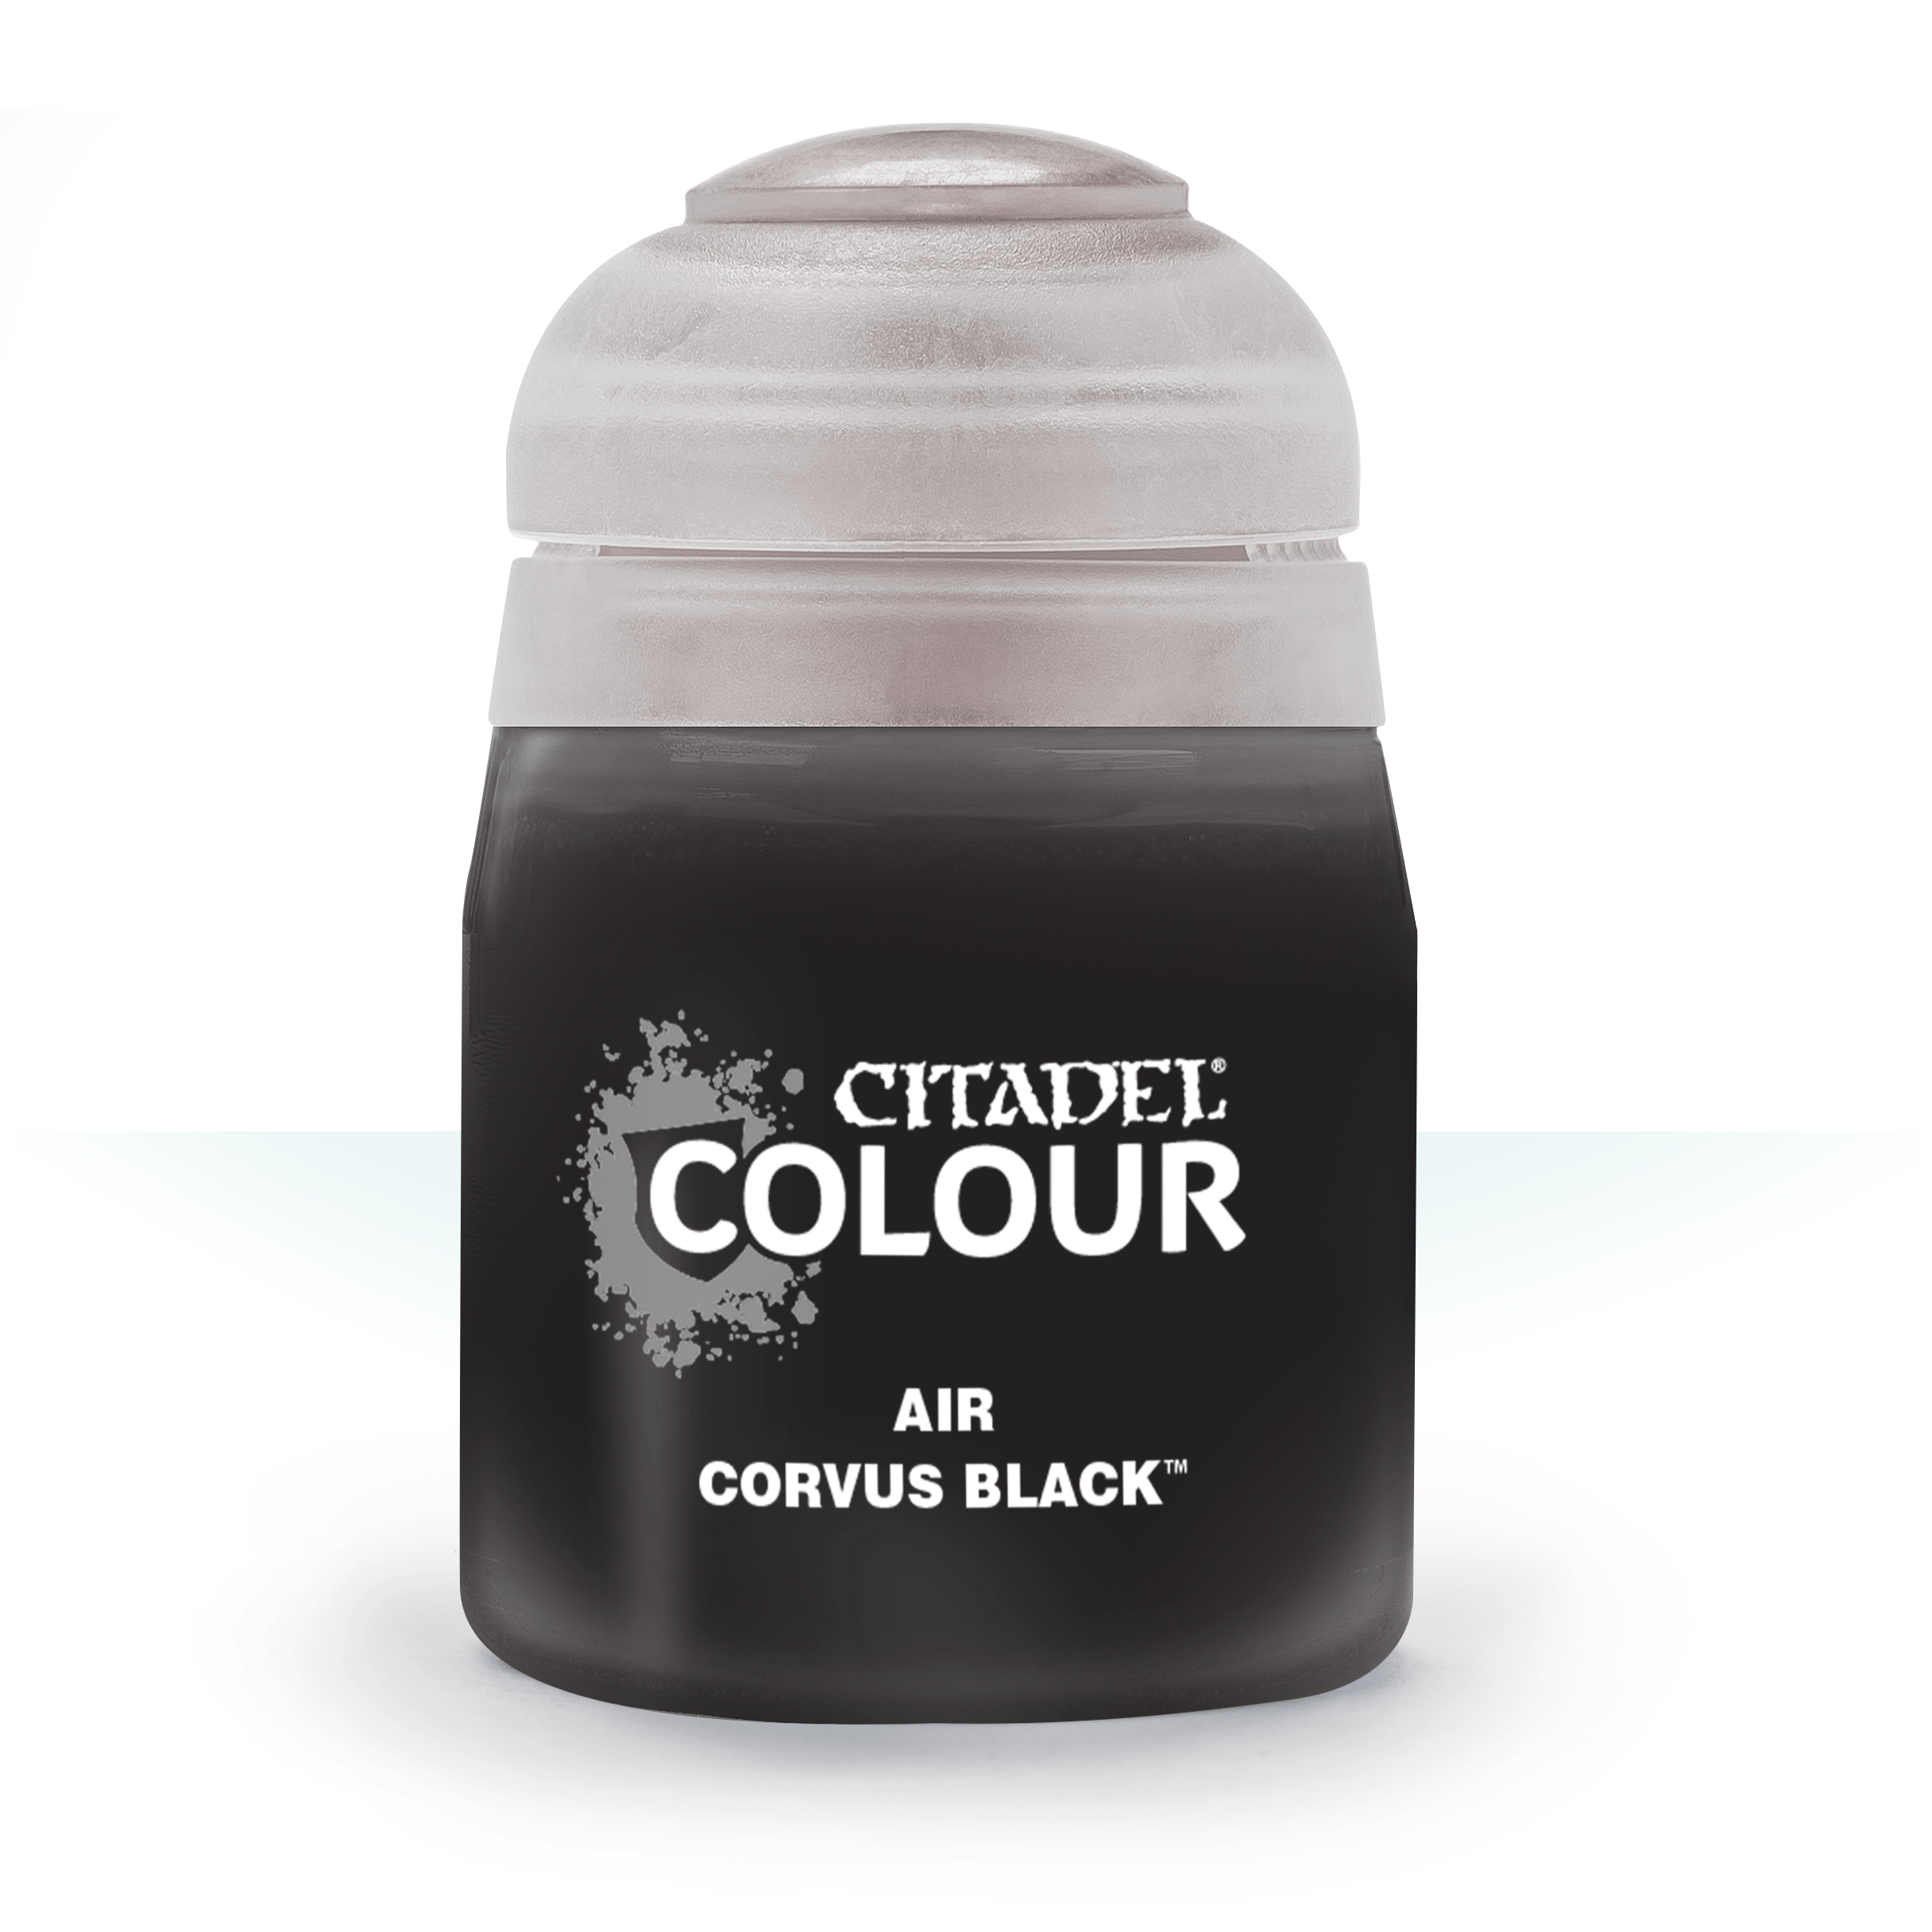 Citadel Airbrush Paints: Corvus Black